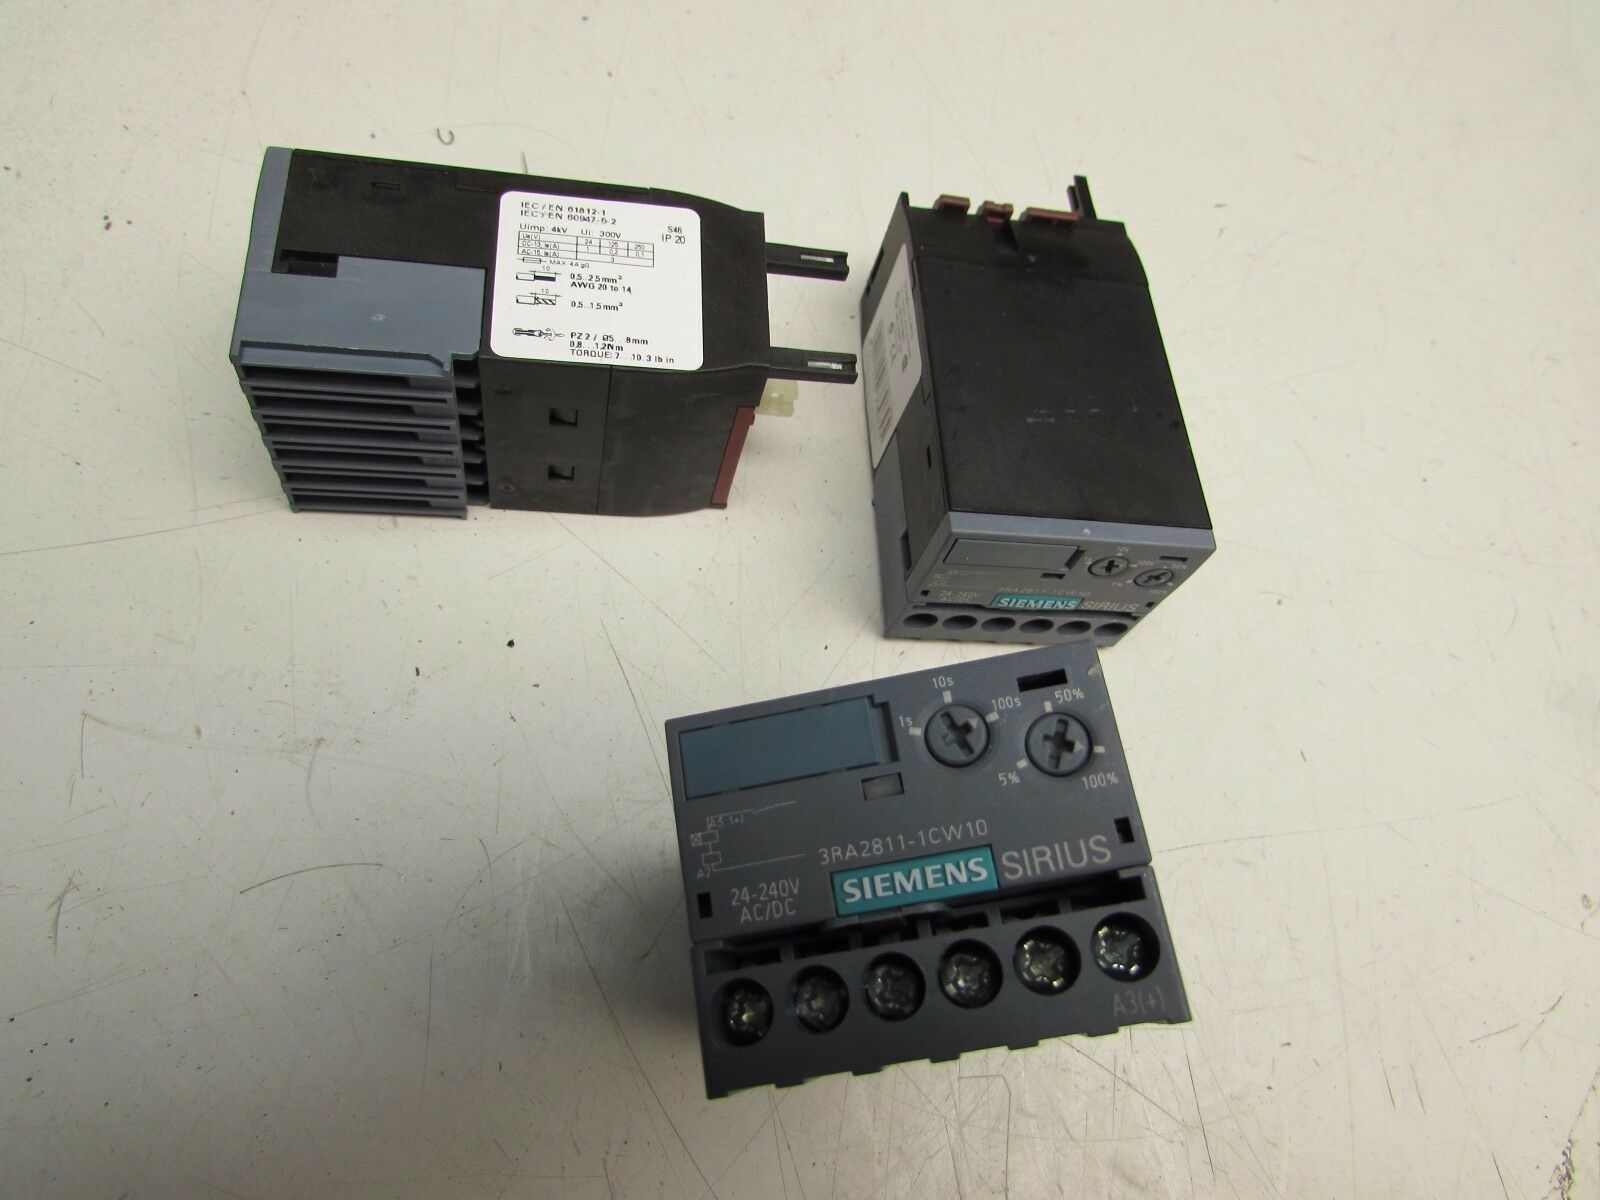 LOT OF 3 SIEMENS SIRIUS 3RA2811-1CW10 TIMING RELAY WITH ON-DELAY 24-240V XLNT